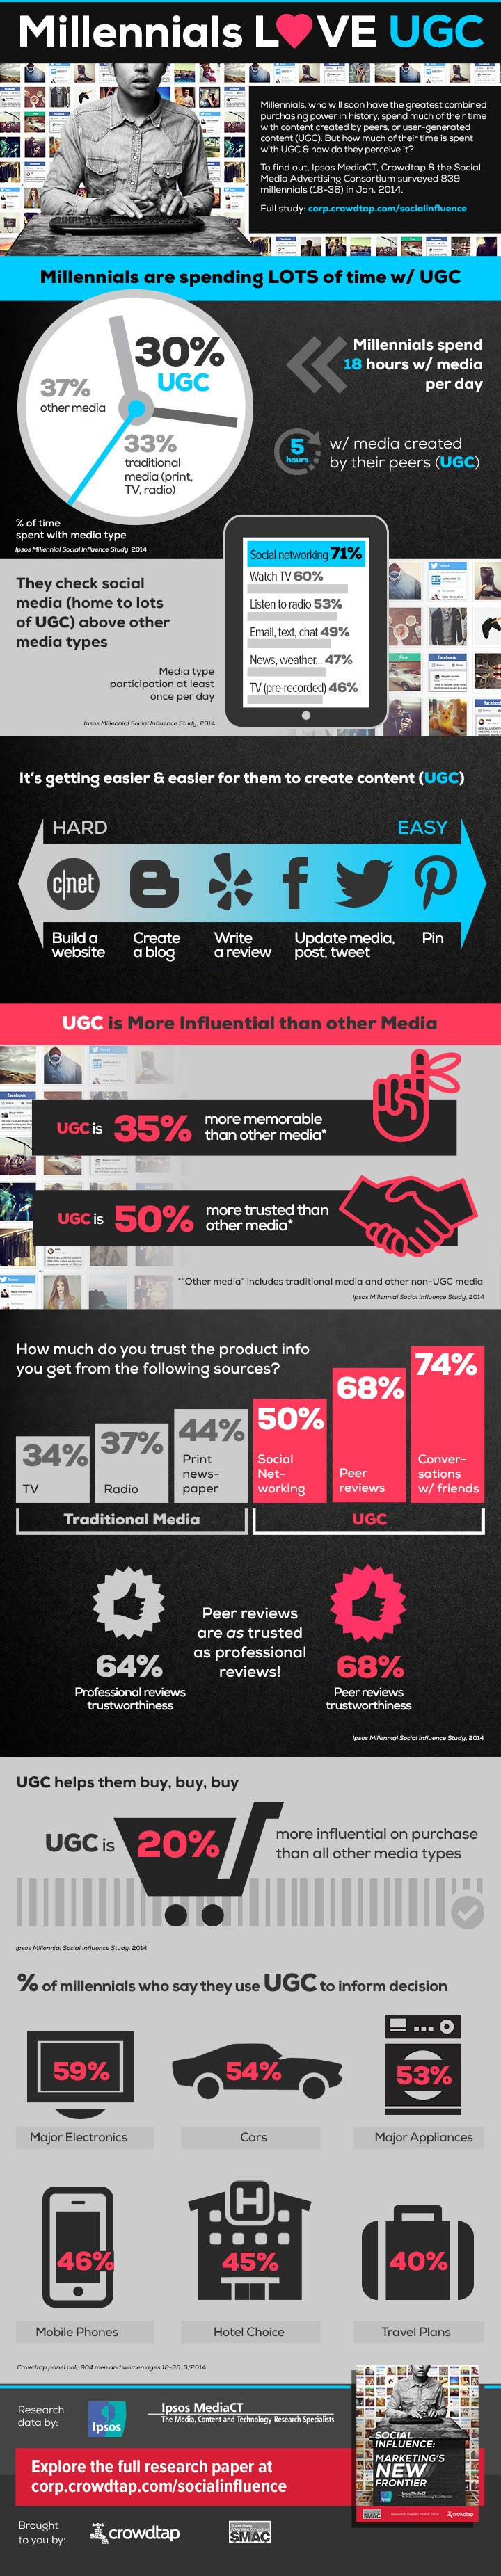 Millennials Marketing and UGC Infographic